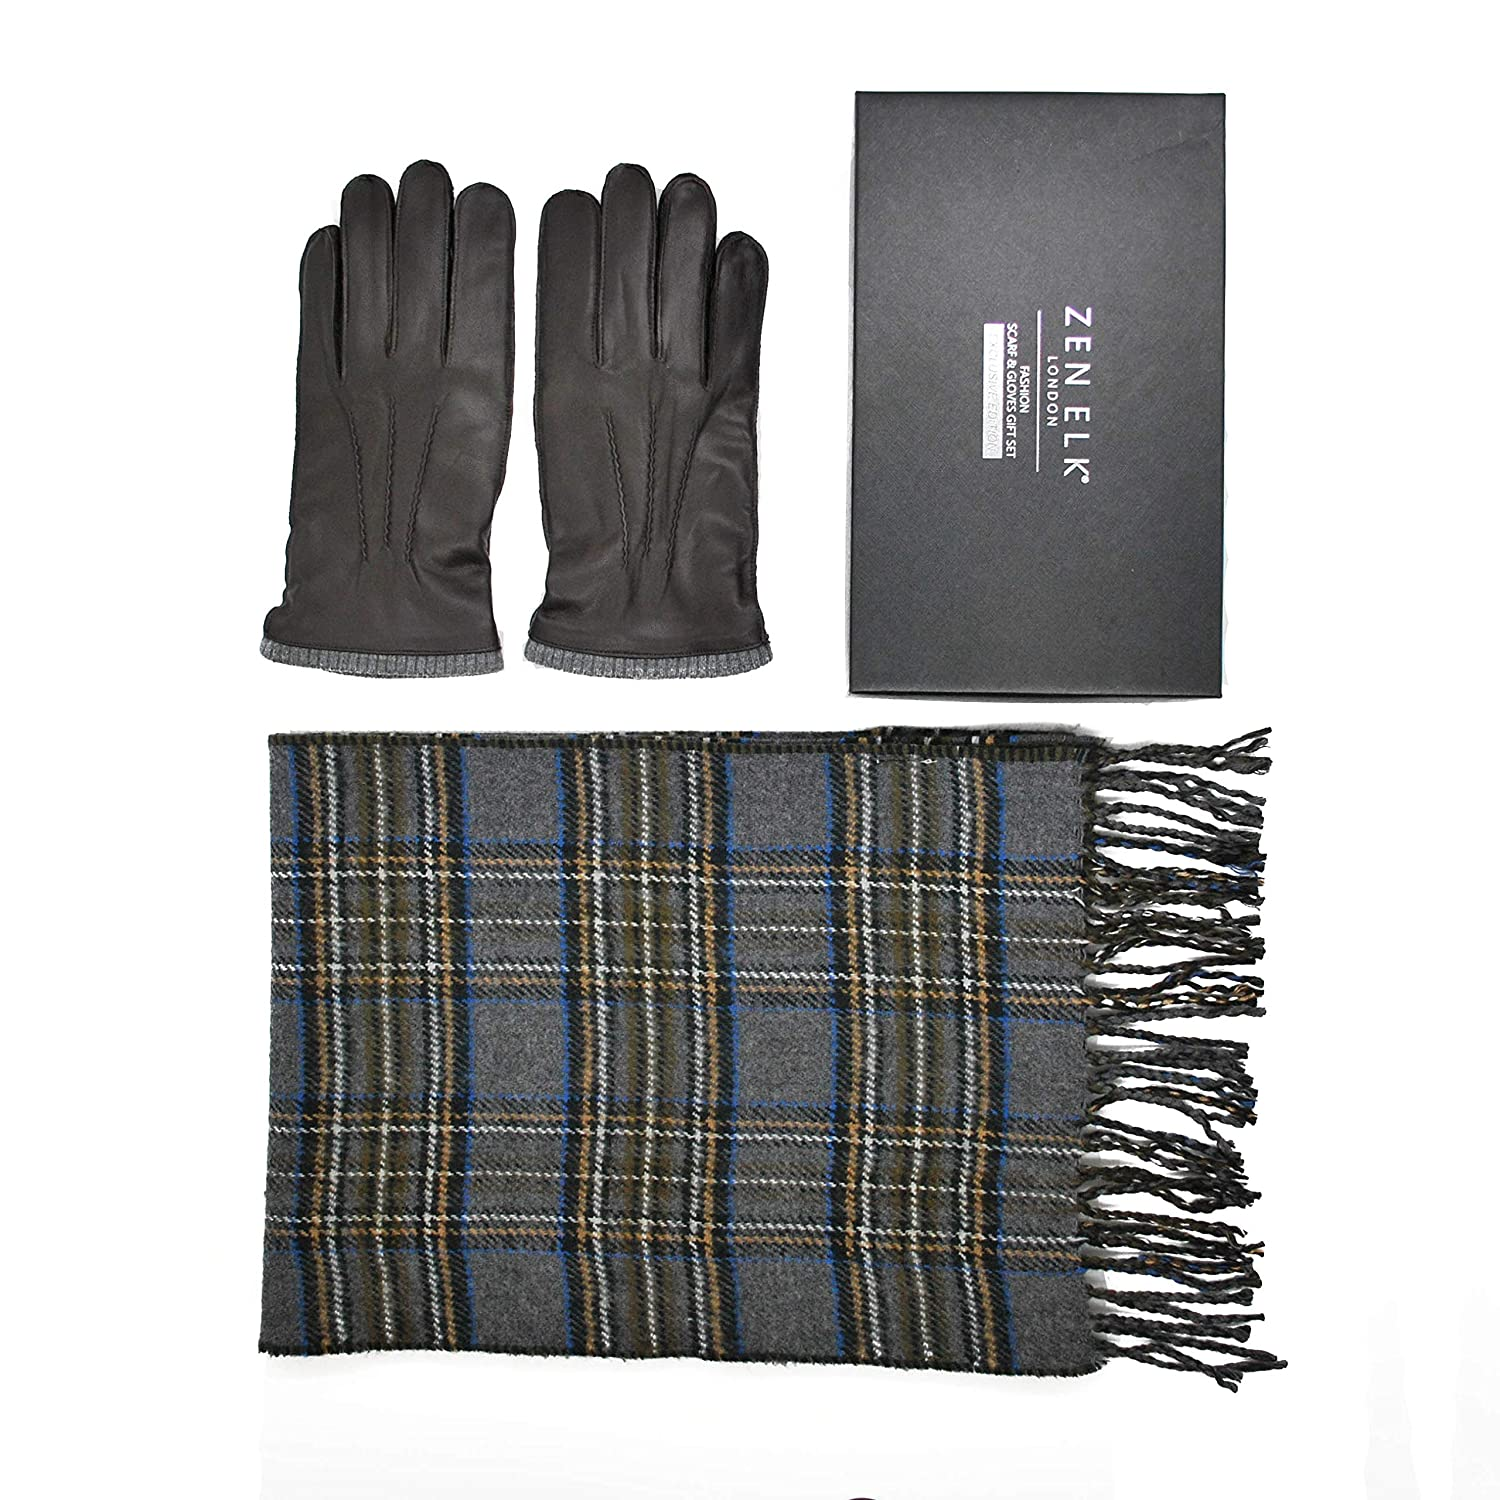 Men's Leather Gloves and Scarf Box Set #18 (L/XL)